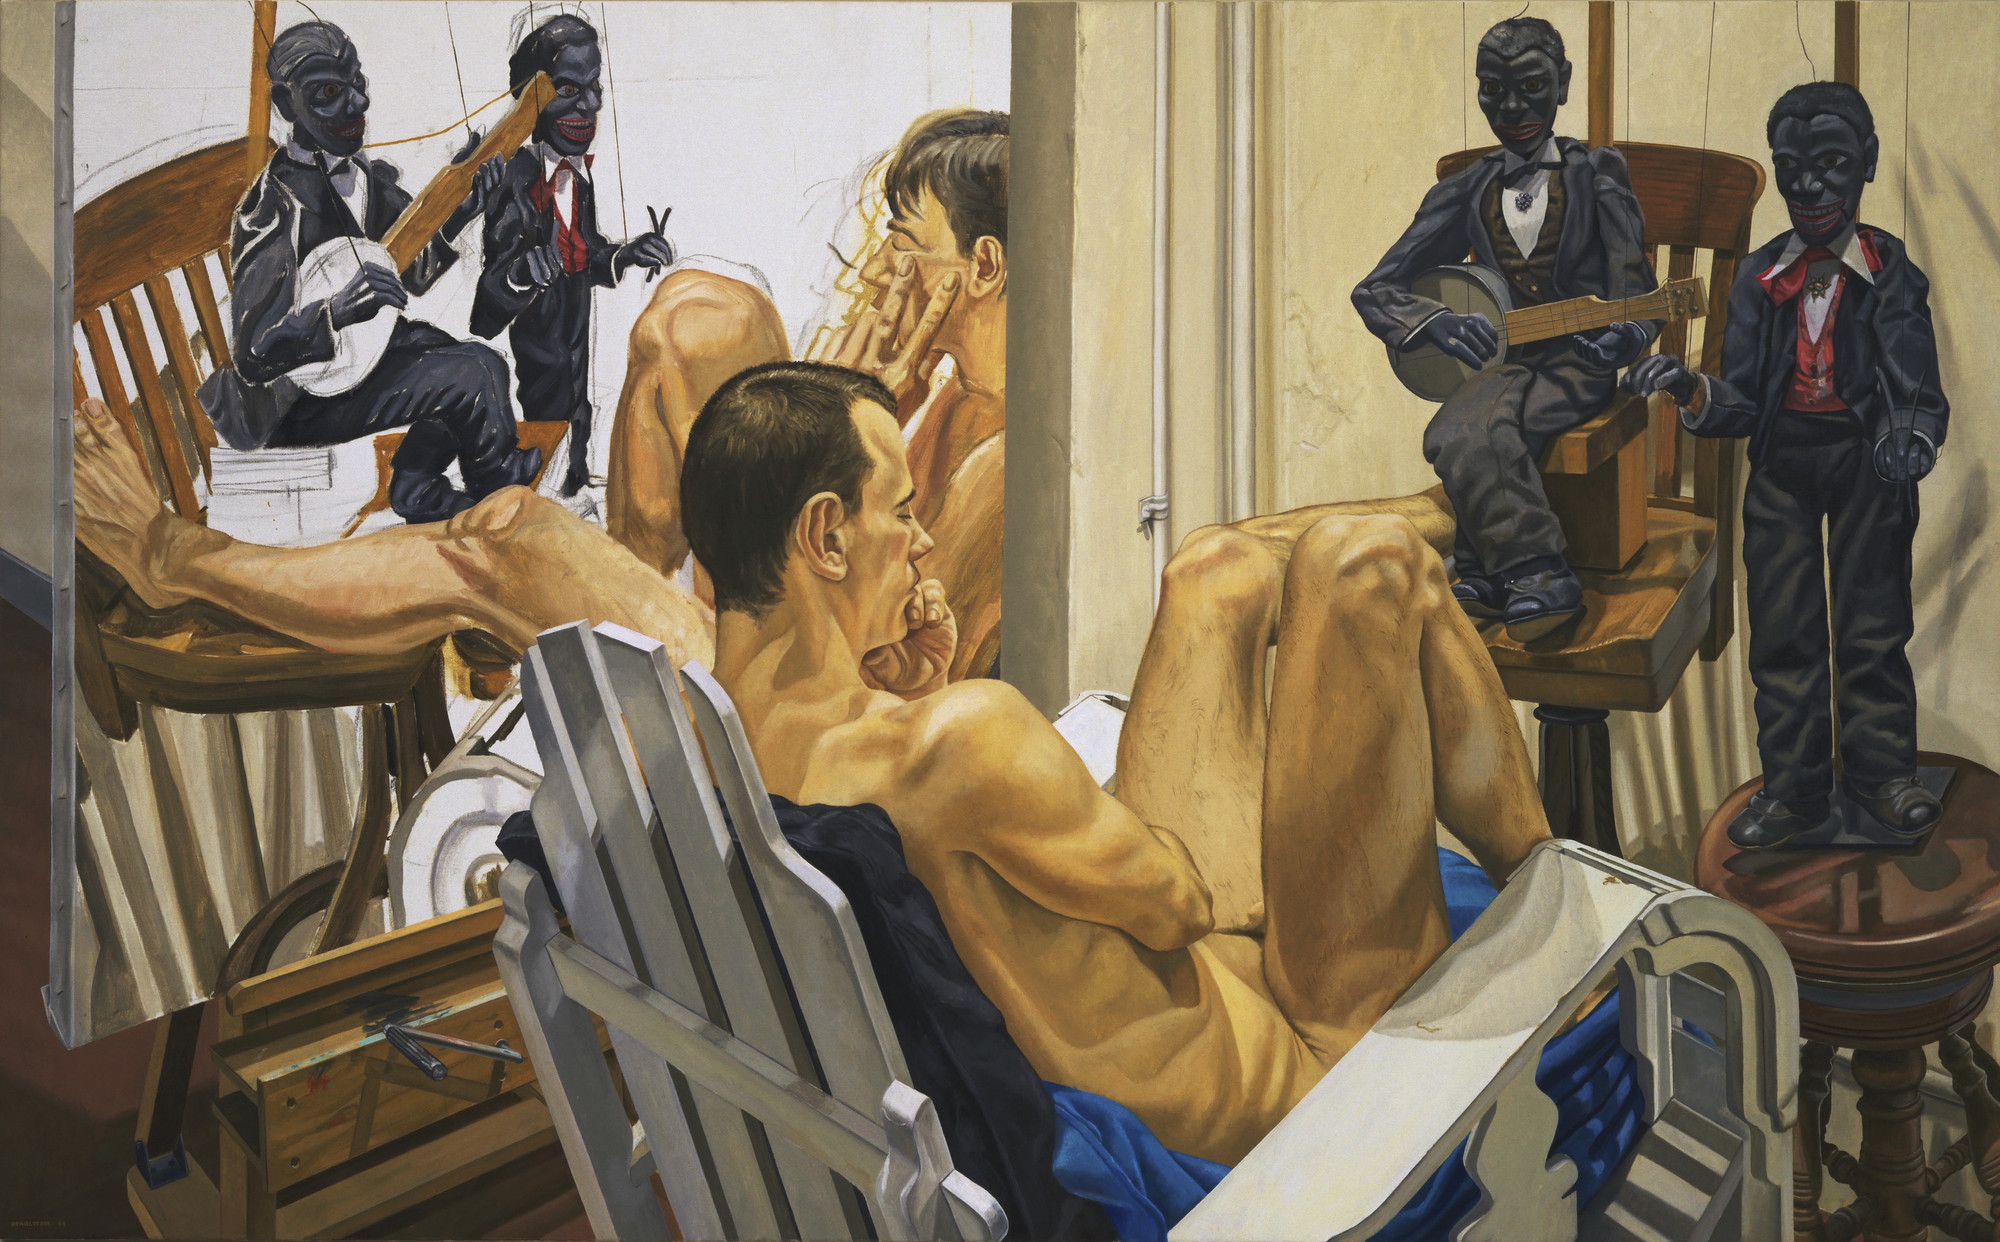 Philip Pearlstein. Male Model, Minstrel Marionettes, and Unfinished Painting. 1994